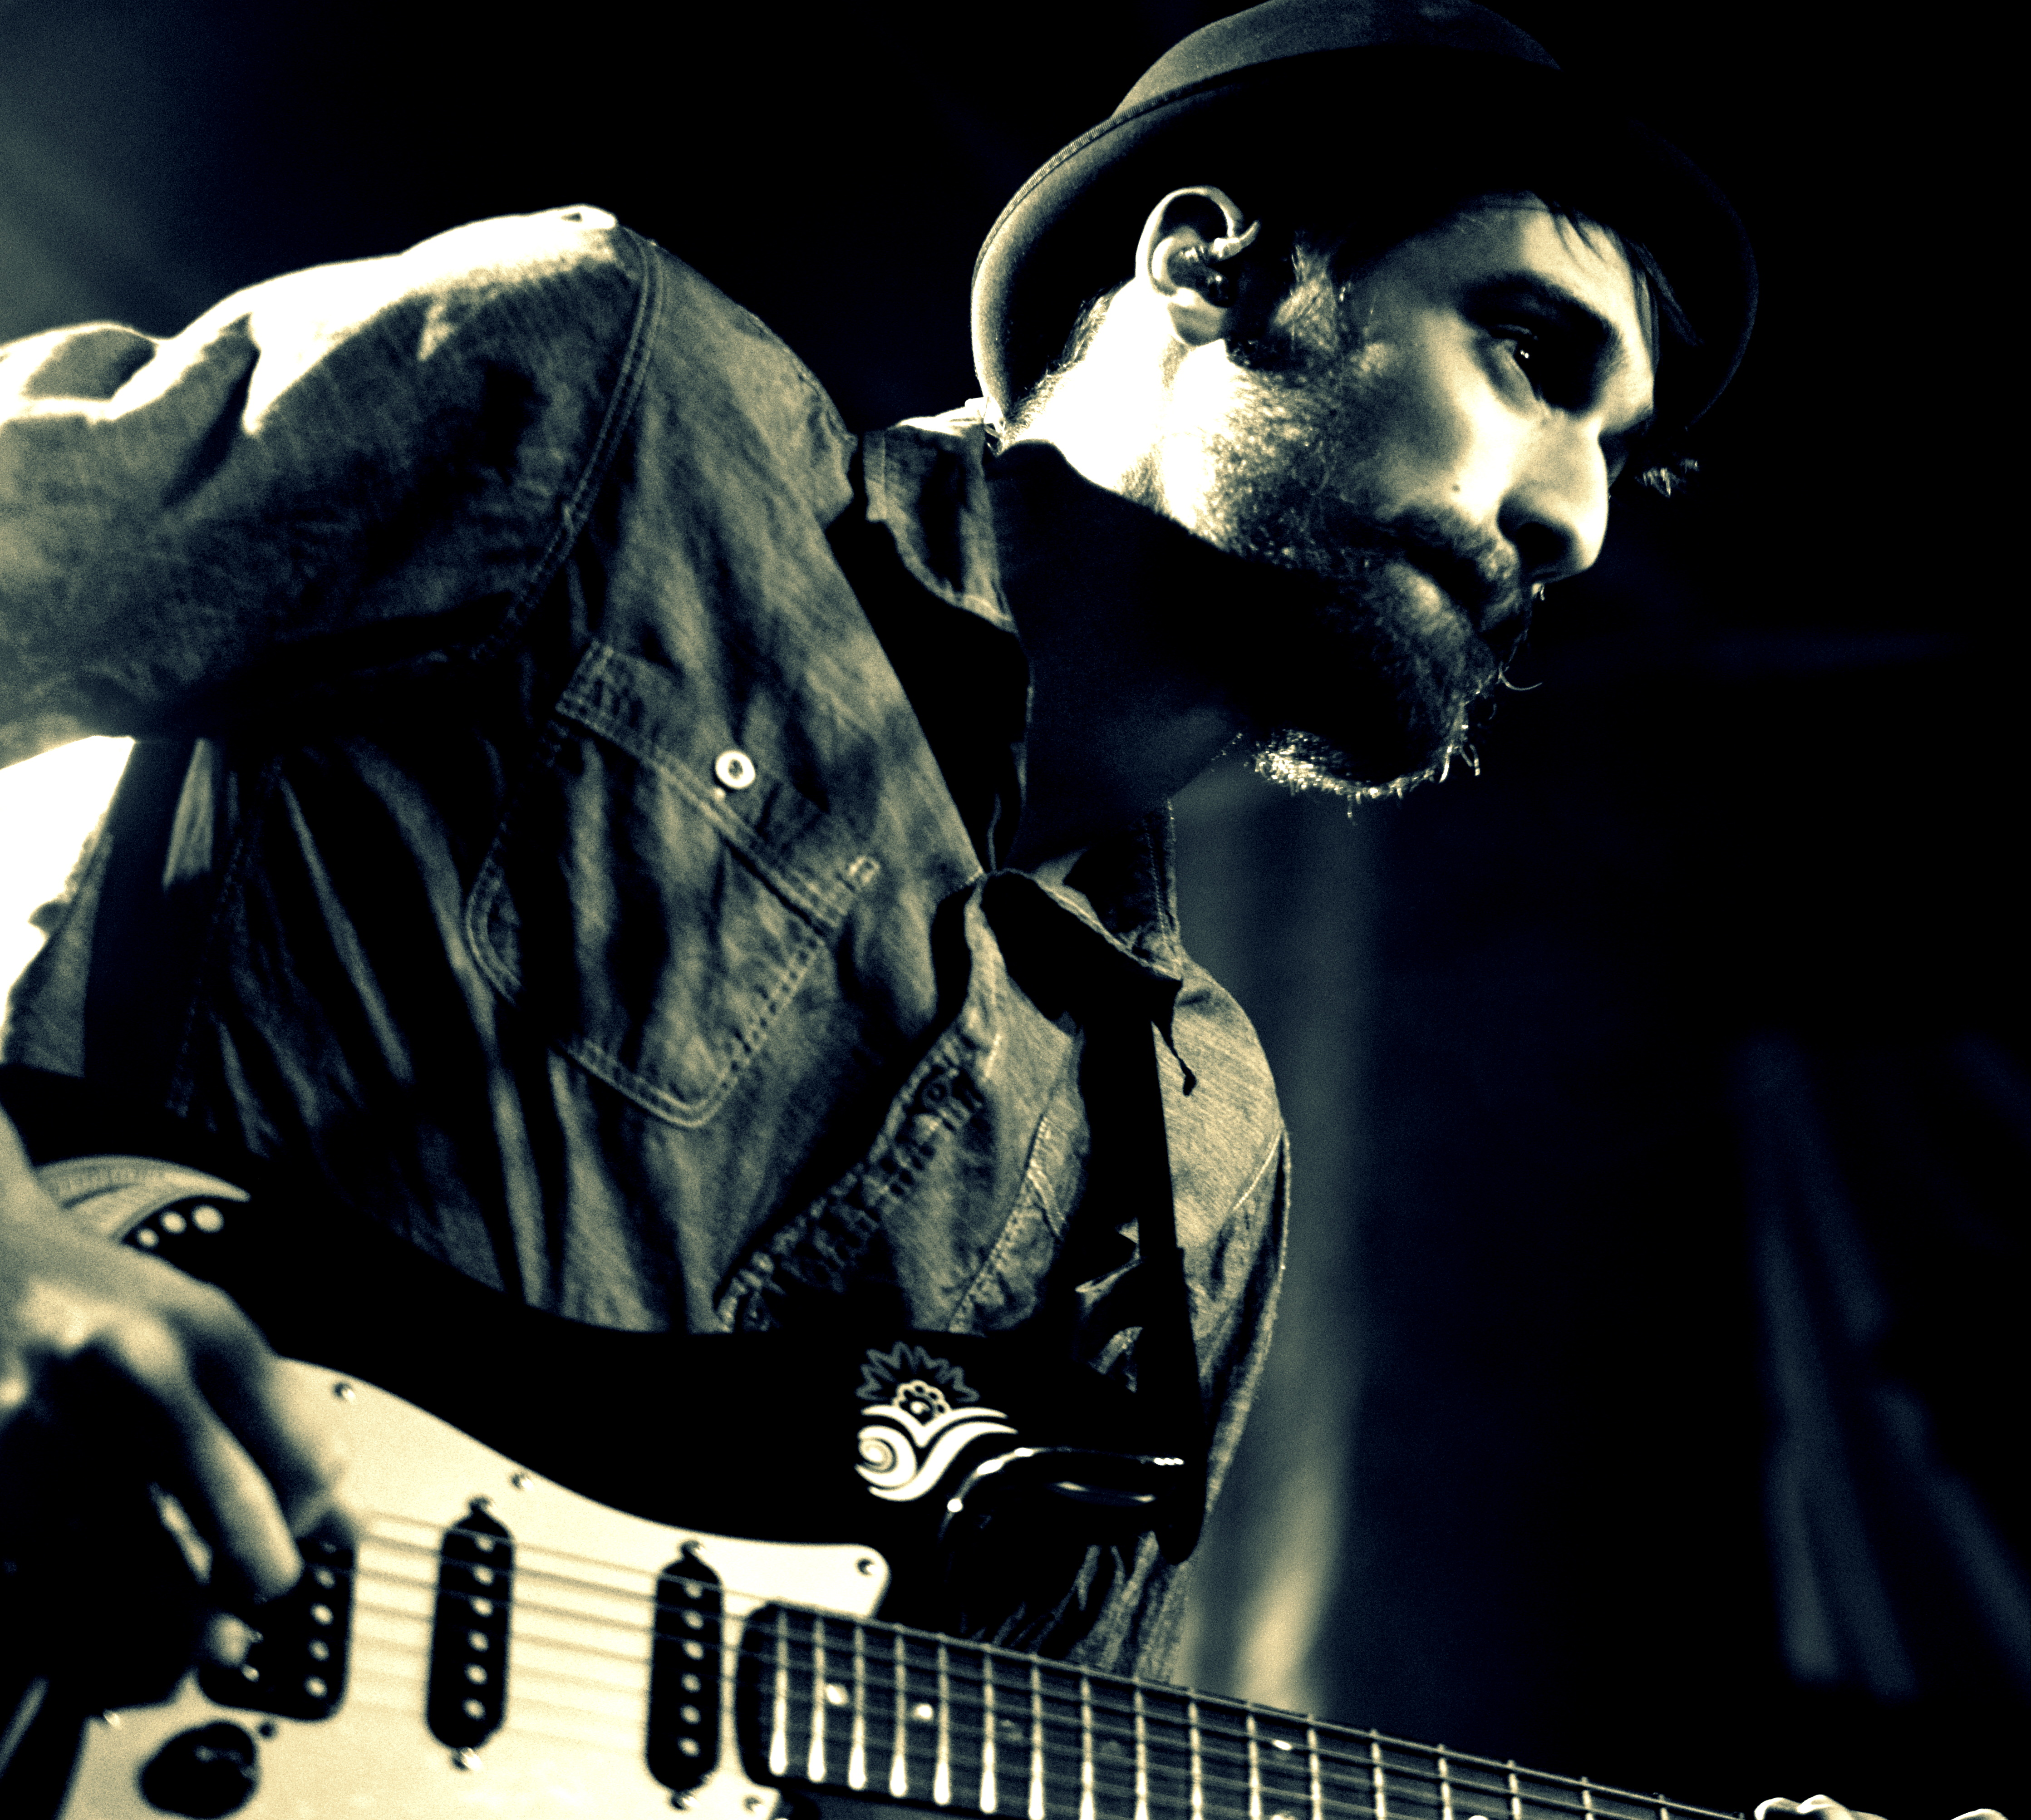 Weekly Interview 5/18/16: Mike Gantzer of Aqueous